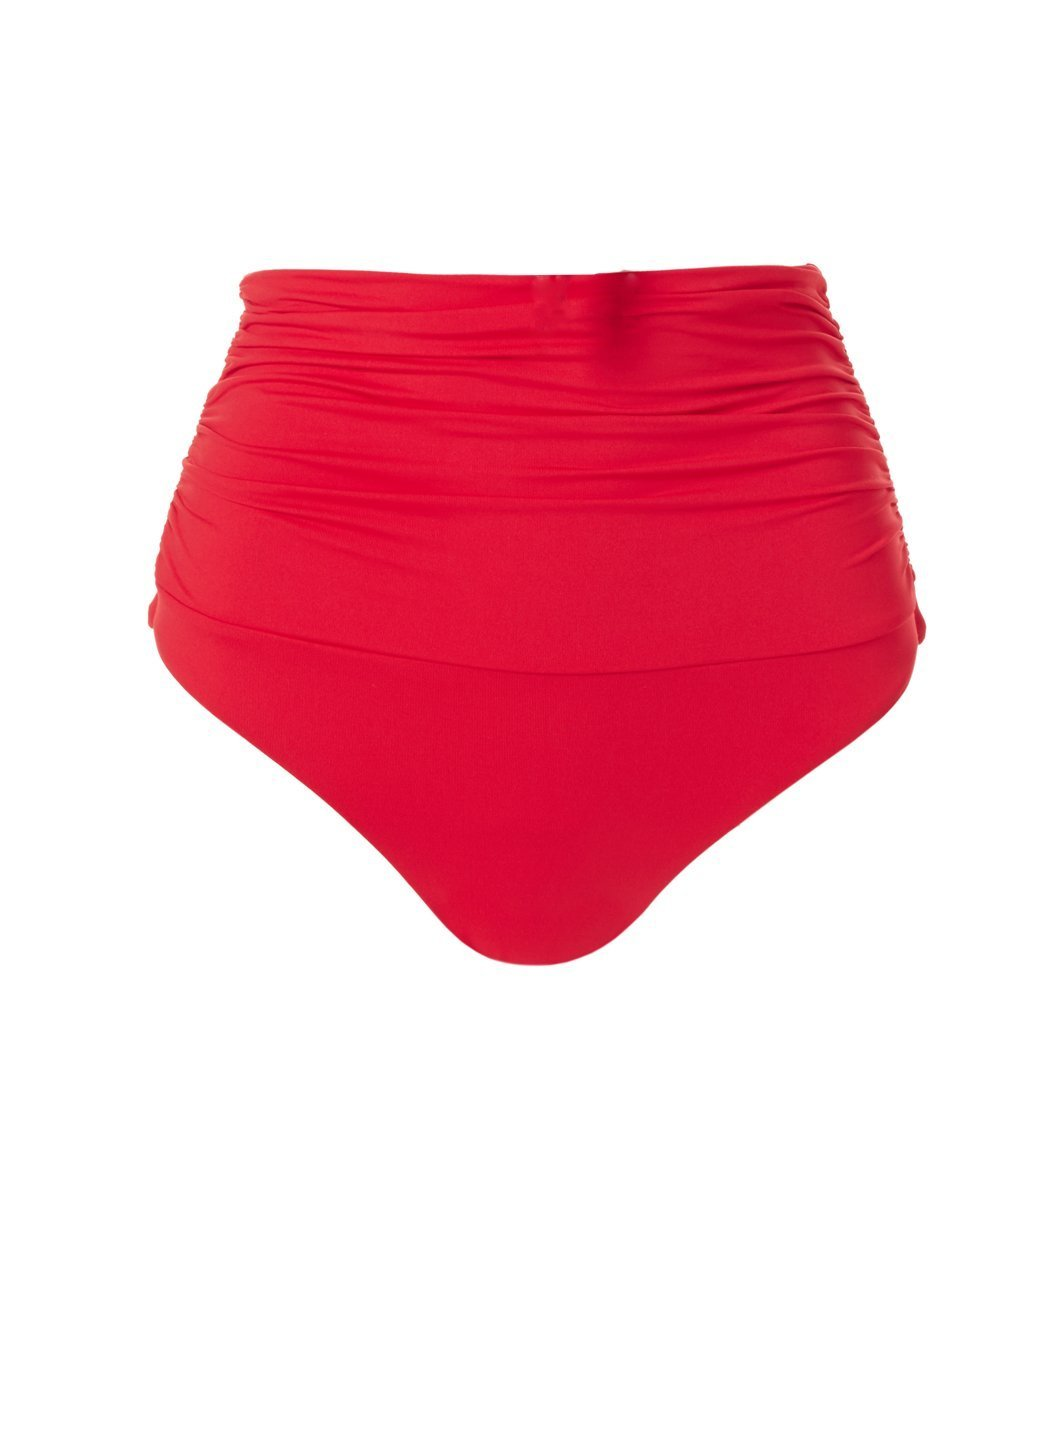 caribe-red-bikini-bottom - Cut-Out